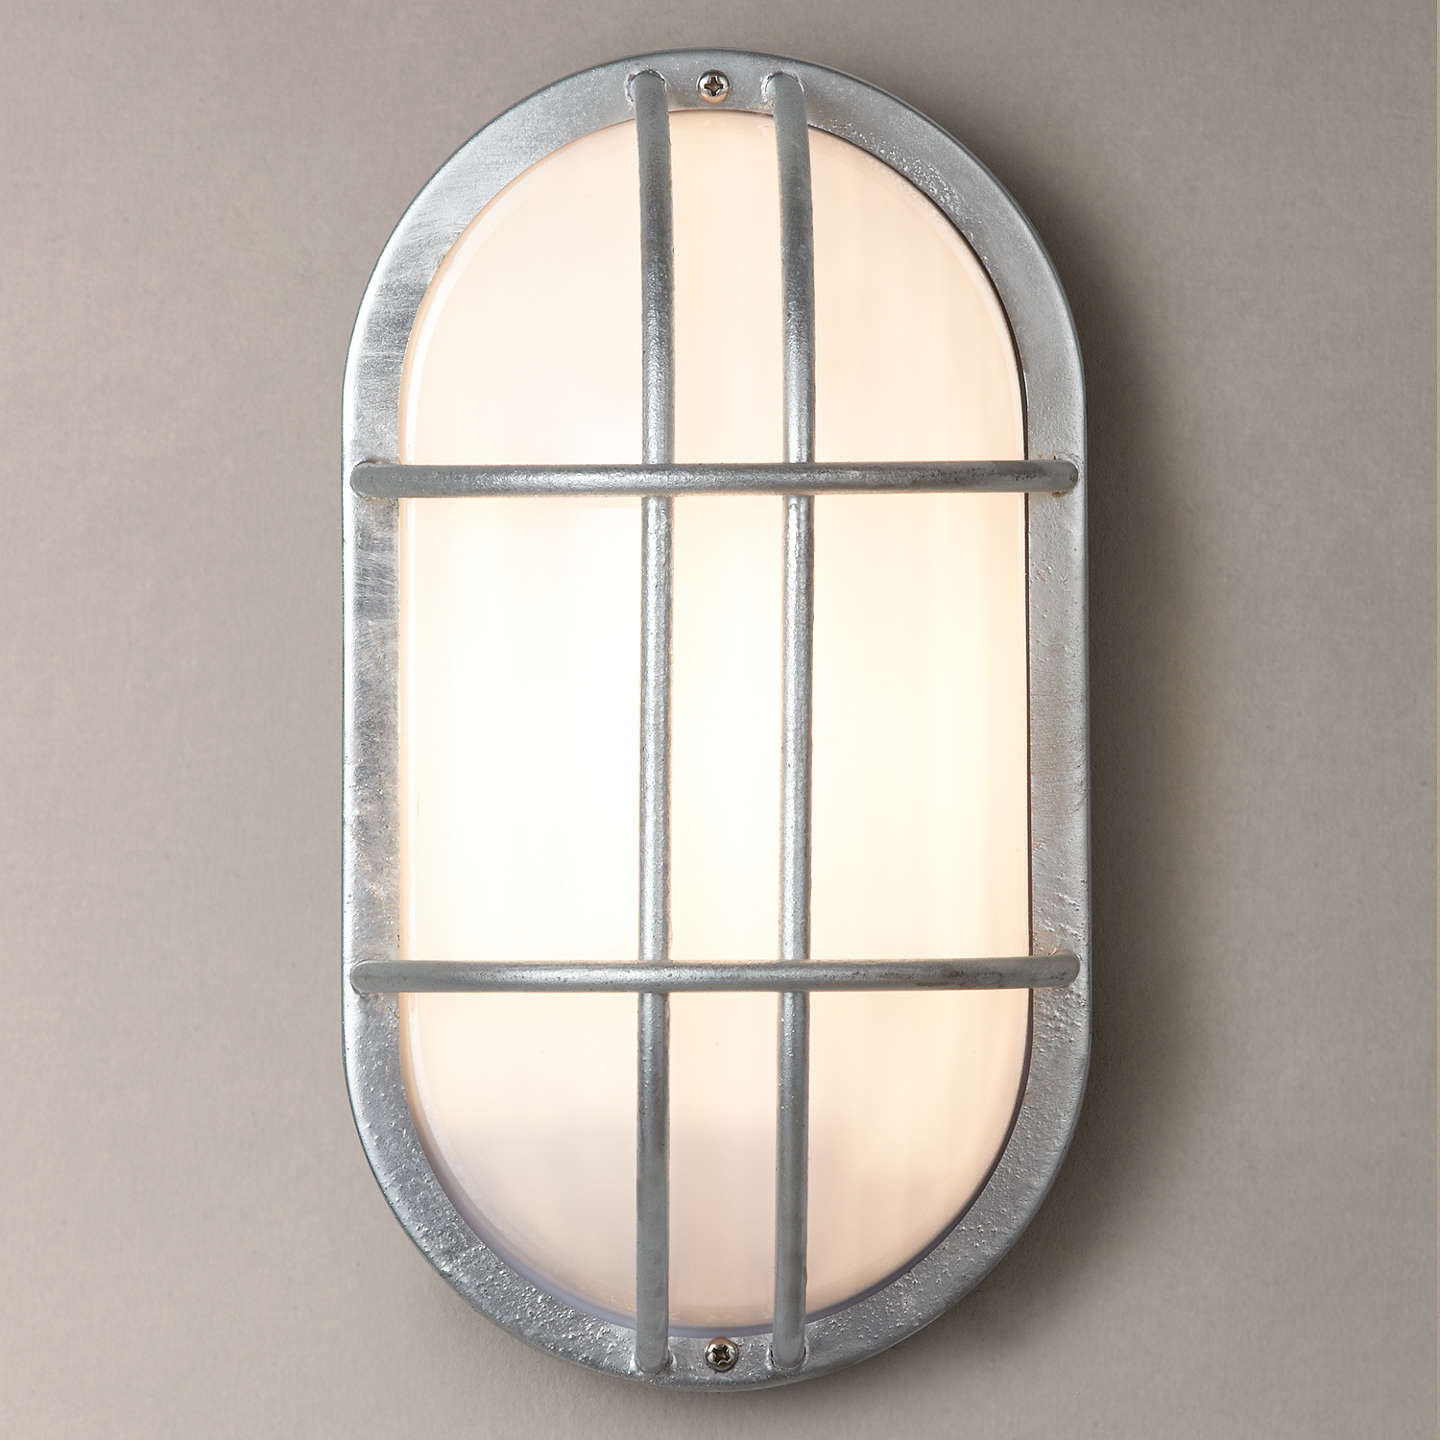 Garden trading st ives bulkhead galvanised outdoor light at john lewis buygarden trading st ives bulkhead galvanised outdoor light online at johnlewis mozeypictures Image collections